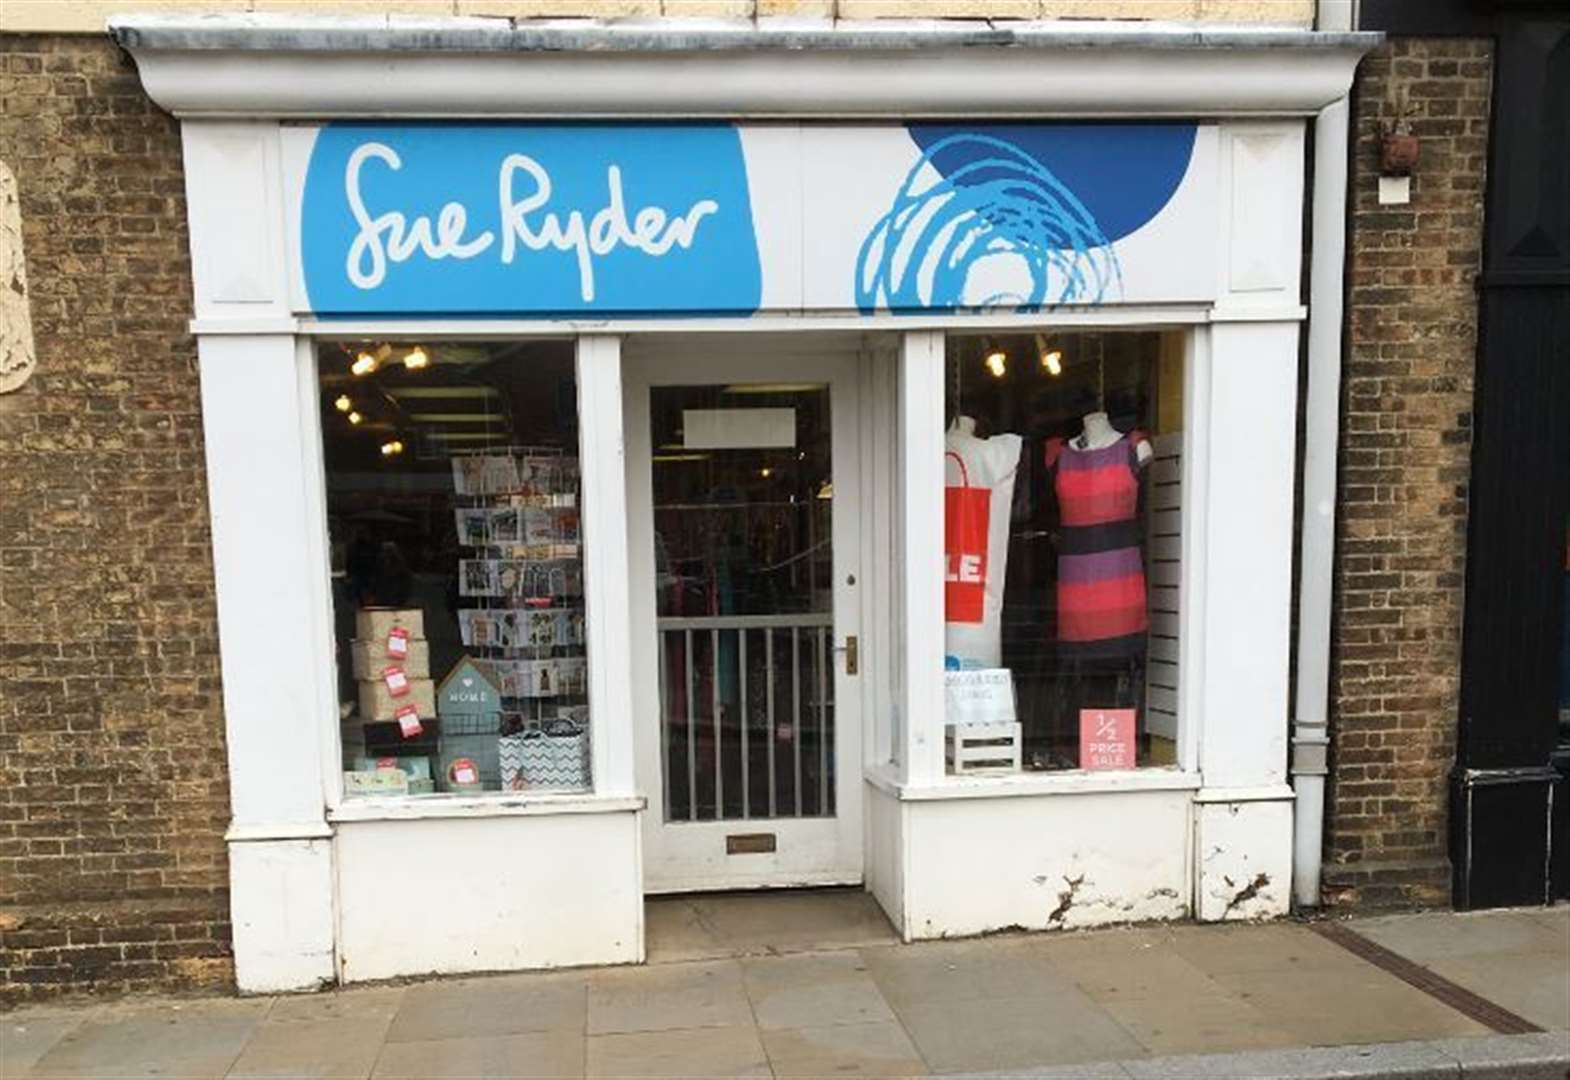 Heartless thieves target Sue Ryder Store in Downham Market, who are now appealing for donations